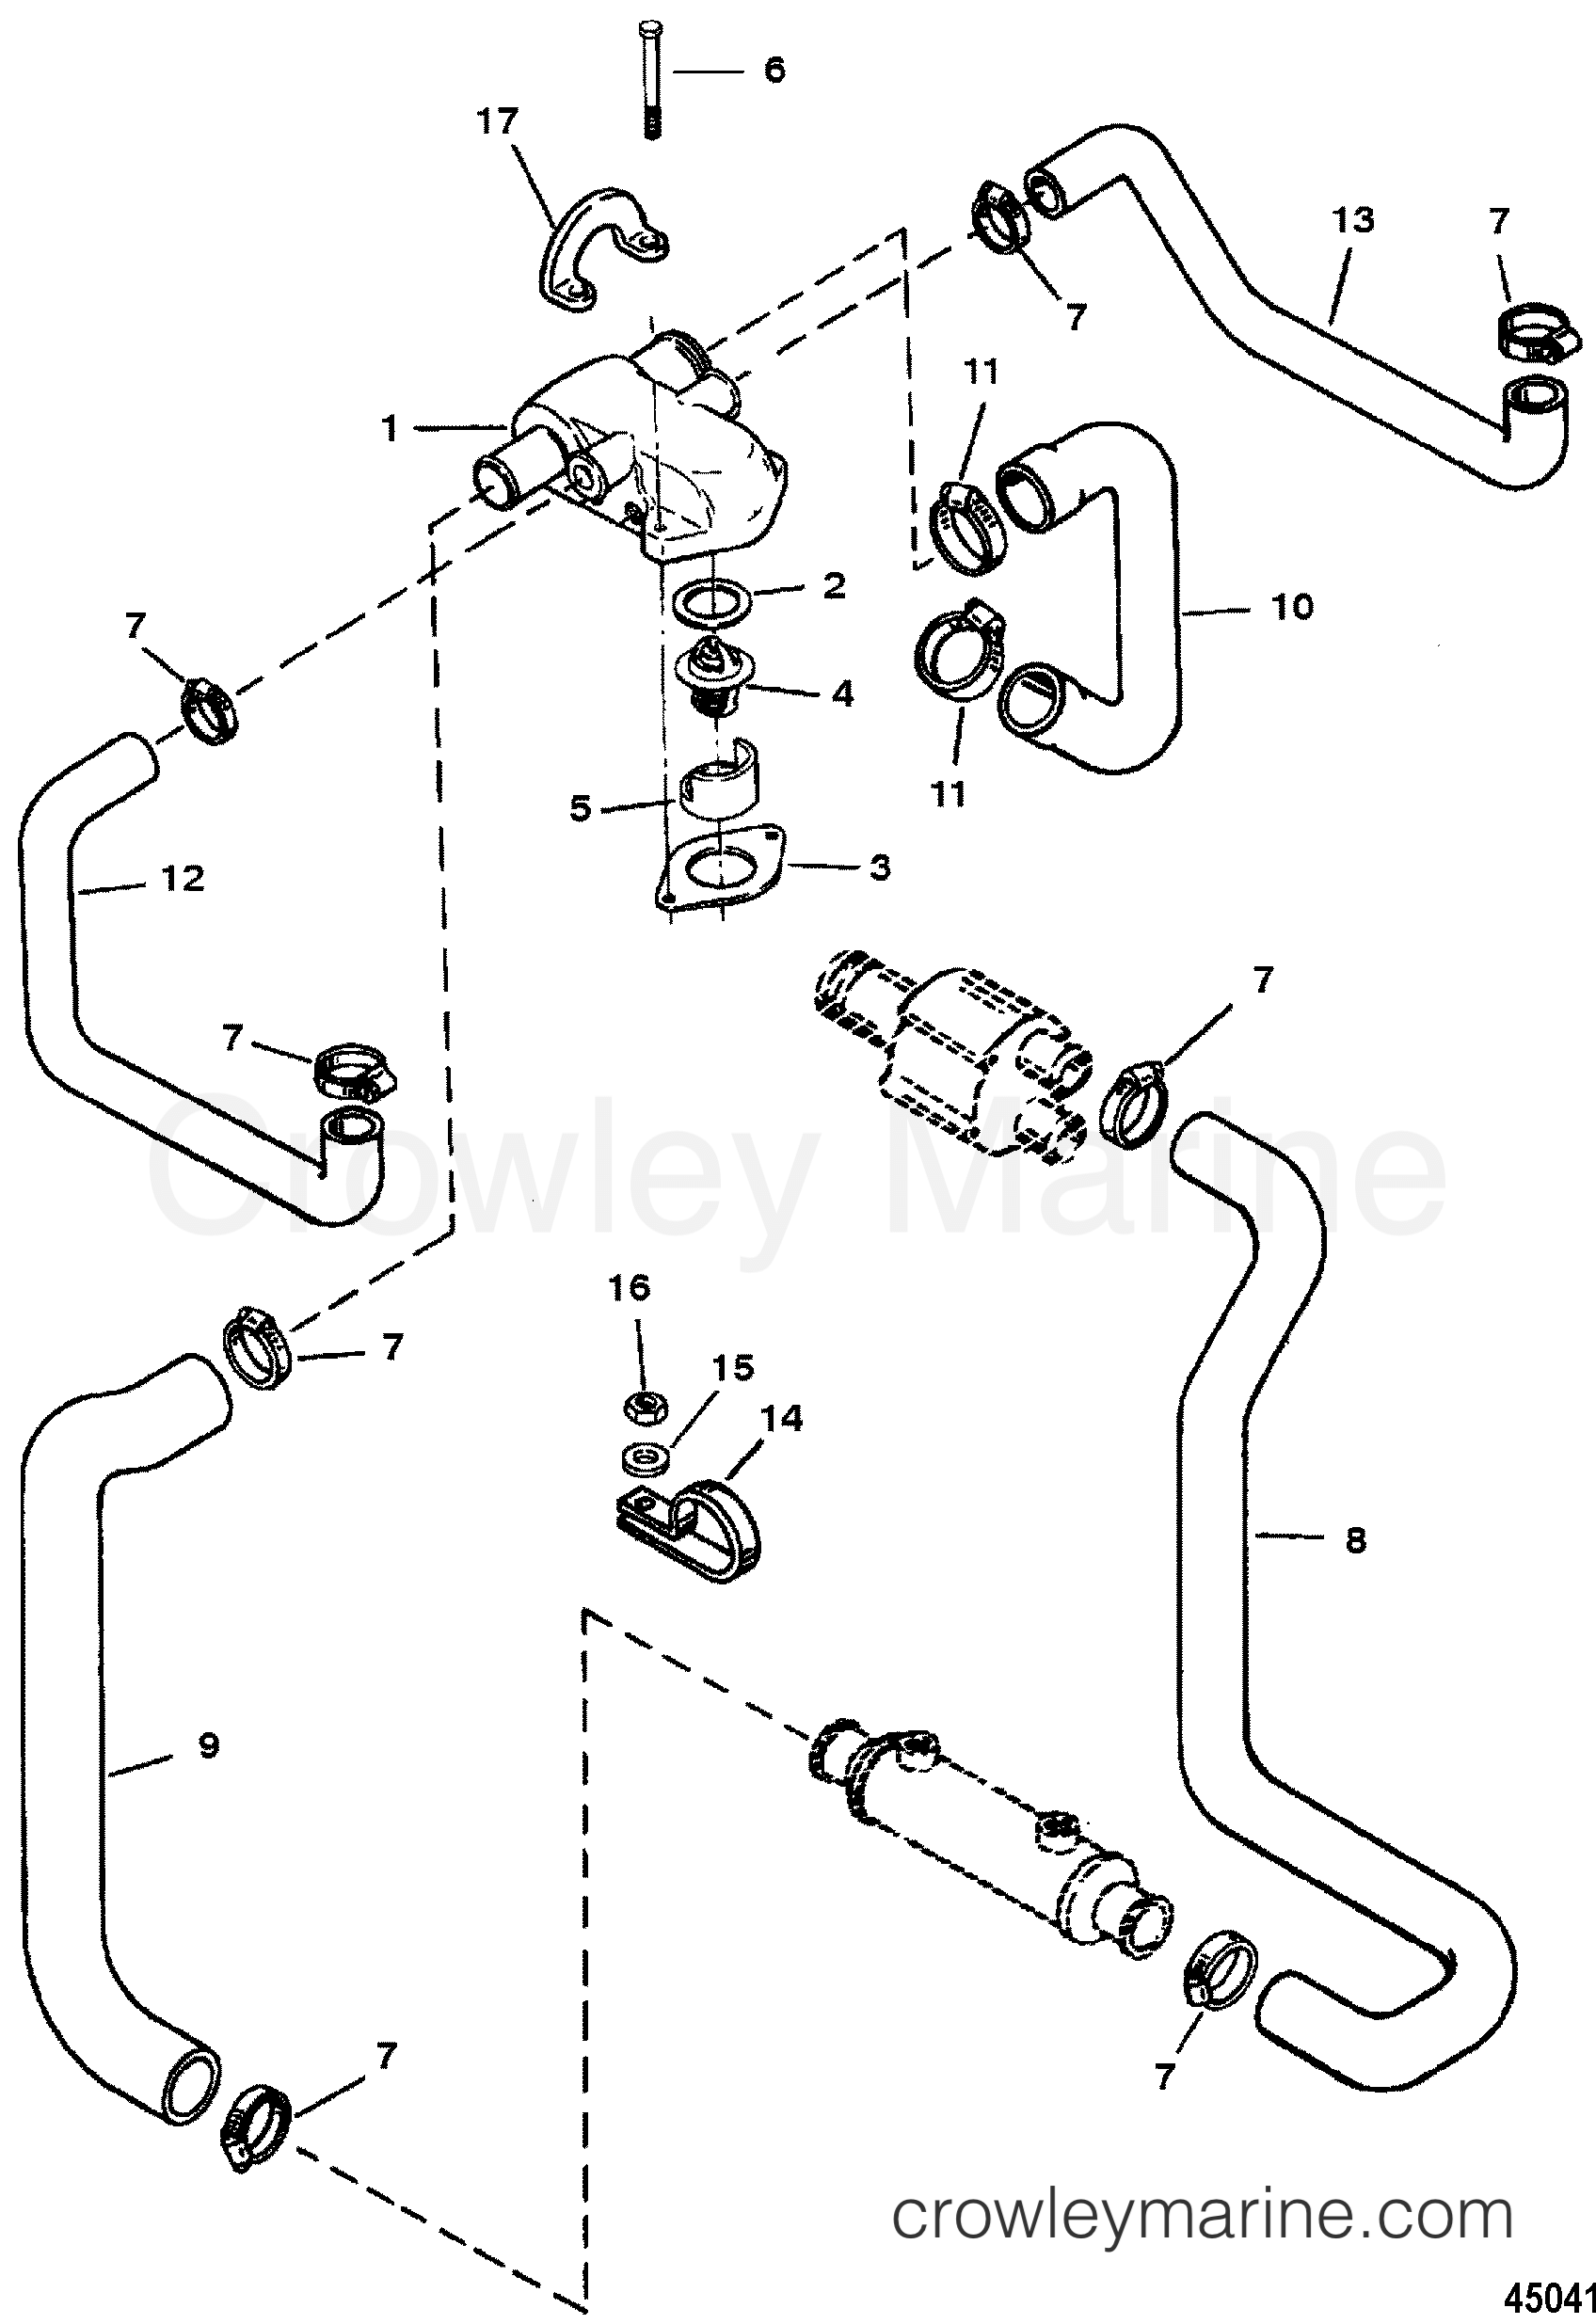 Mercury Engine Cooling Diagram Simple Wiring Jeep Thermostat Housingcast Iron Standard 1994